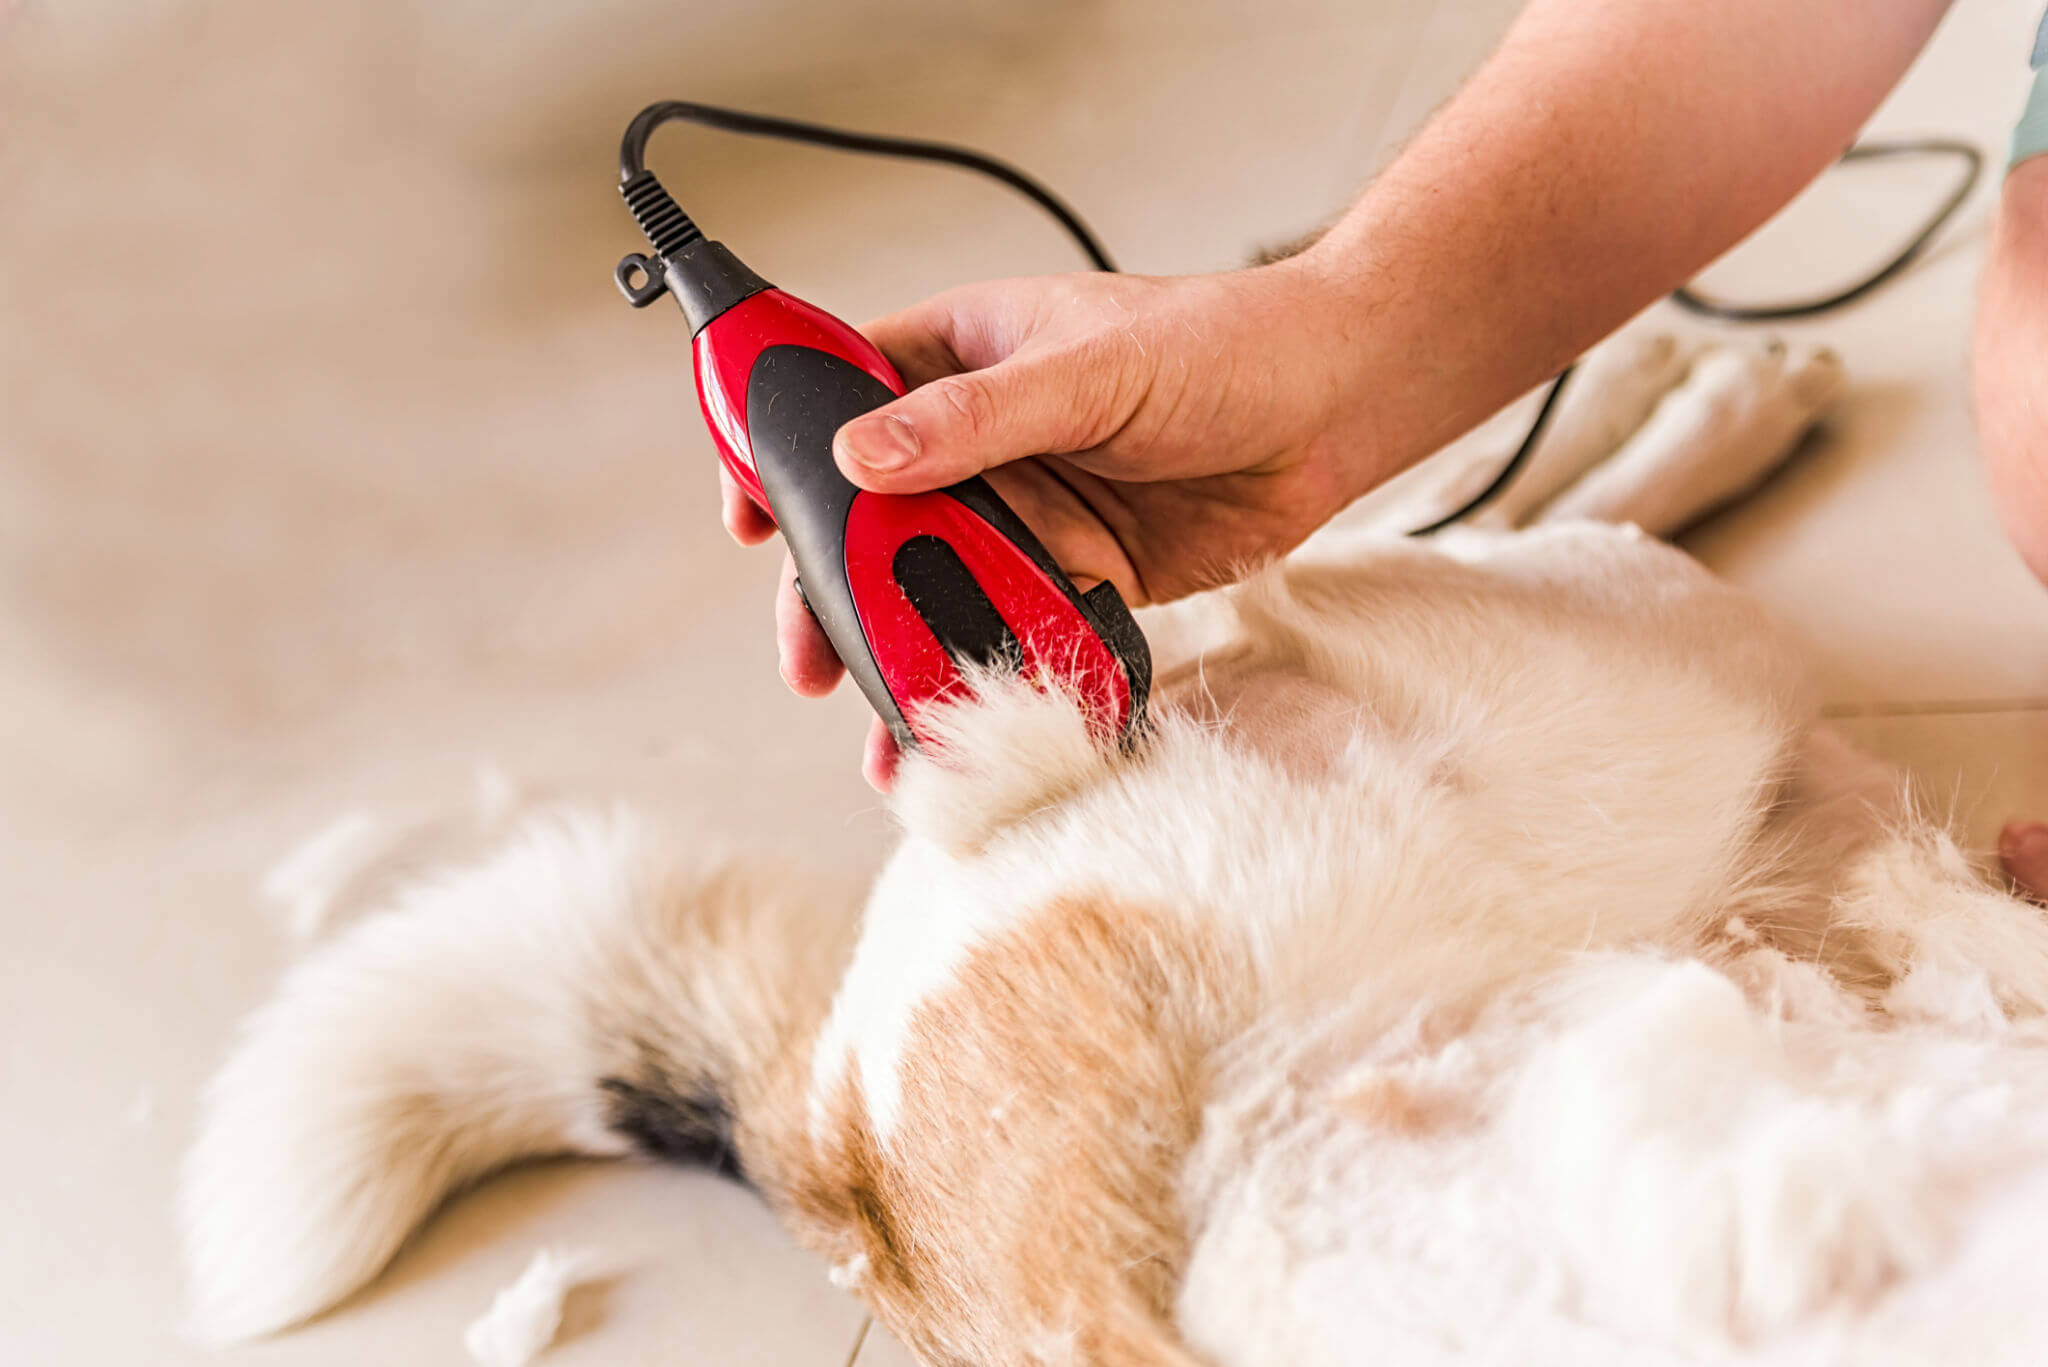 Know some importance of pet grooming